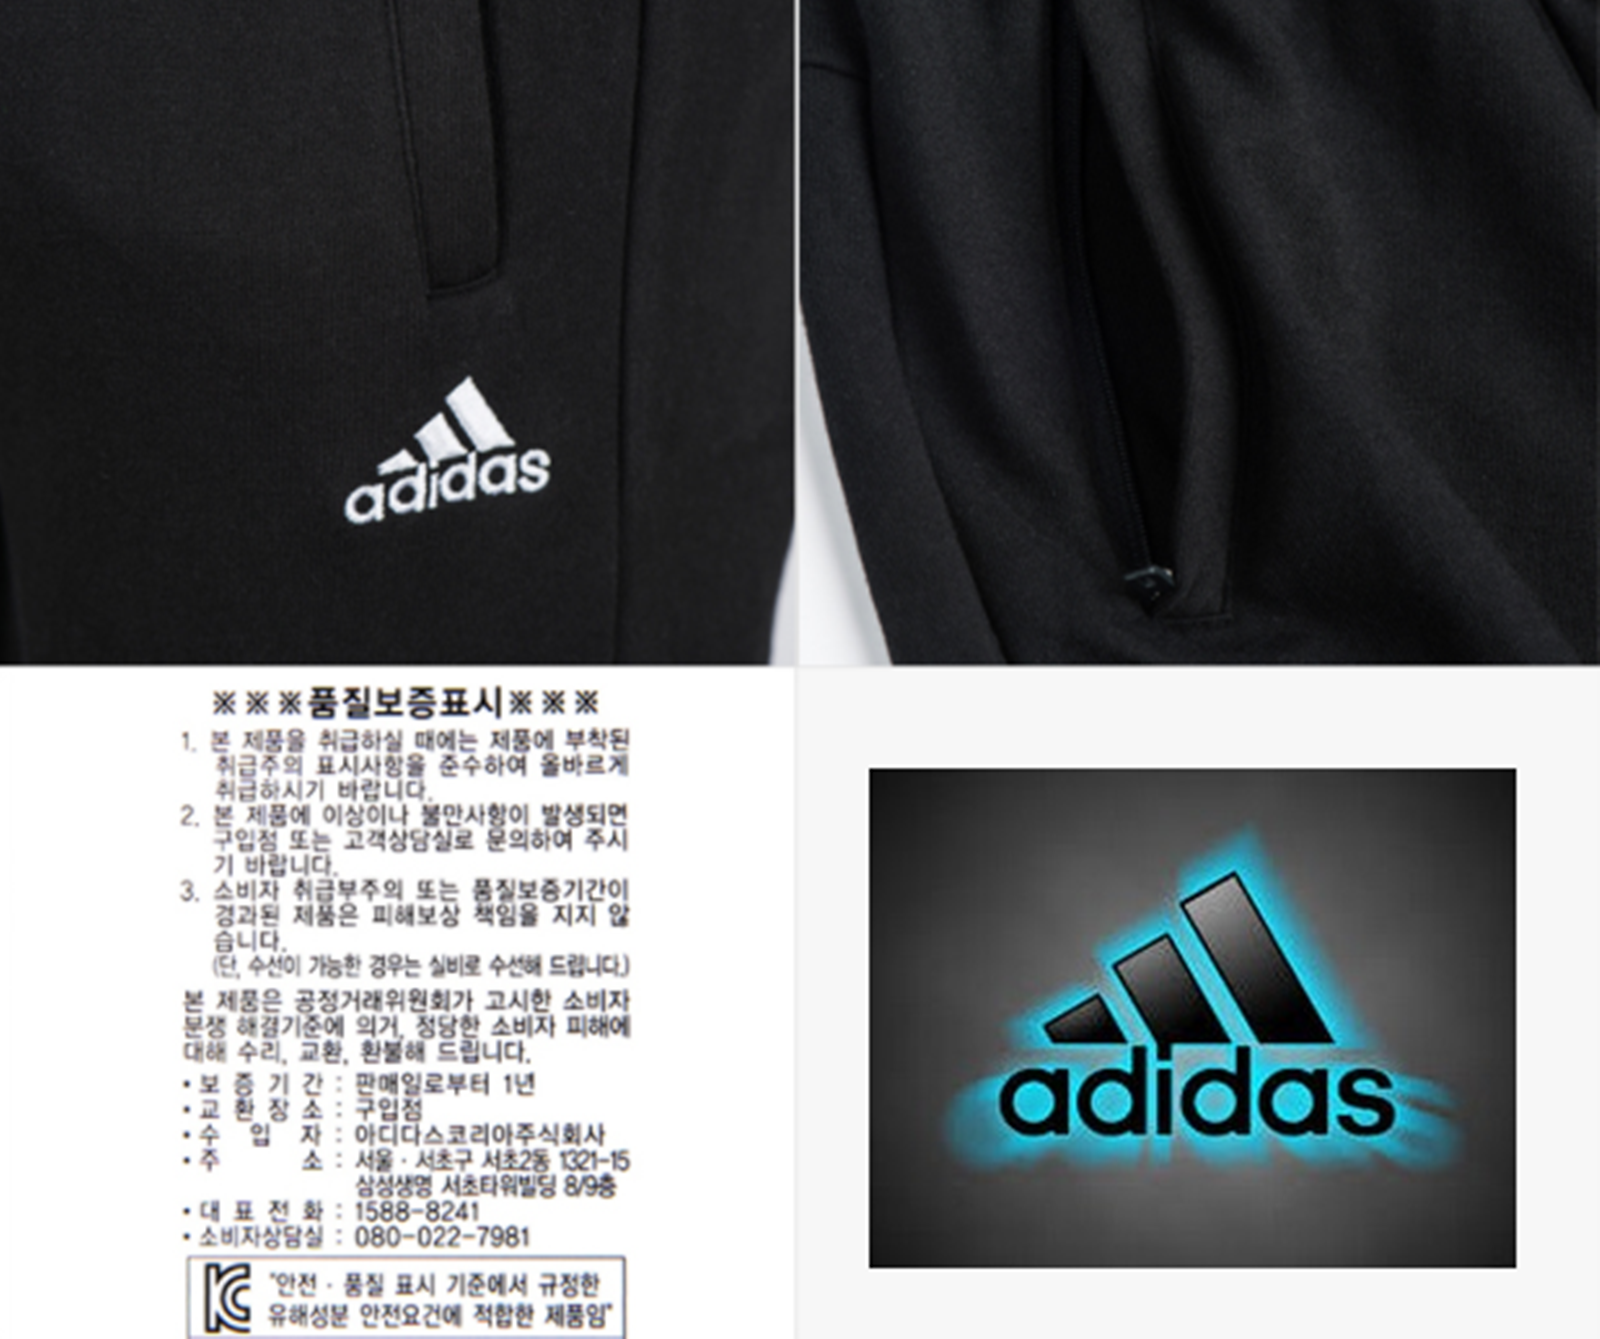 Adidas Training Men TND Winter Sweats Pants Training Adidas L/S Black Gray Casual Running Pant 5a78c6